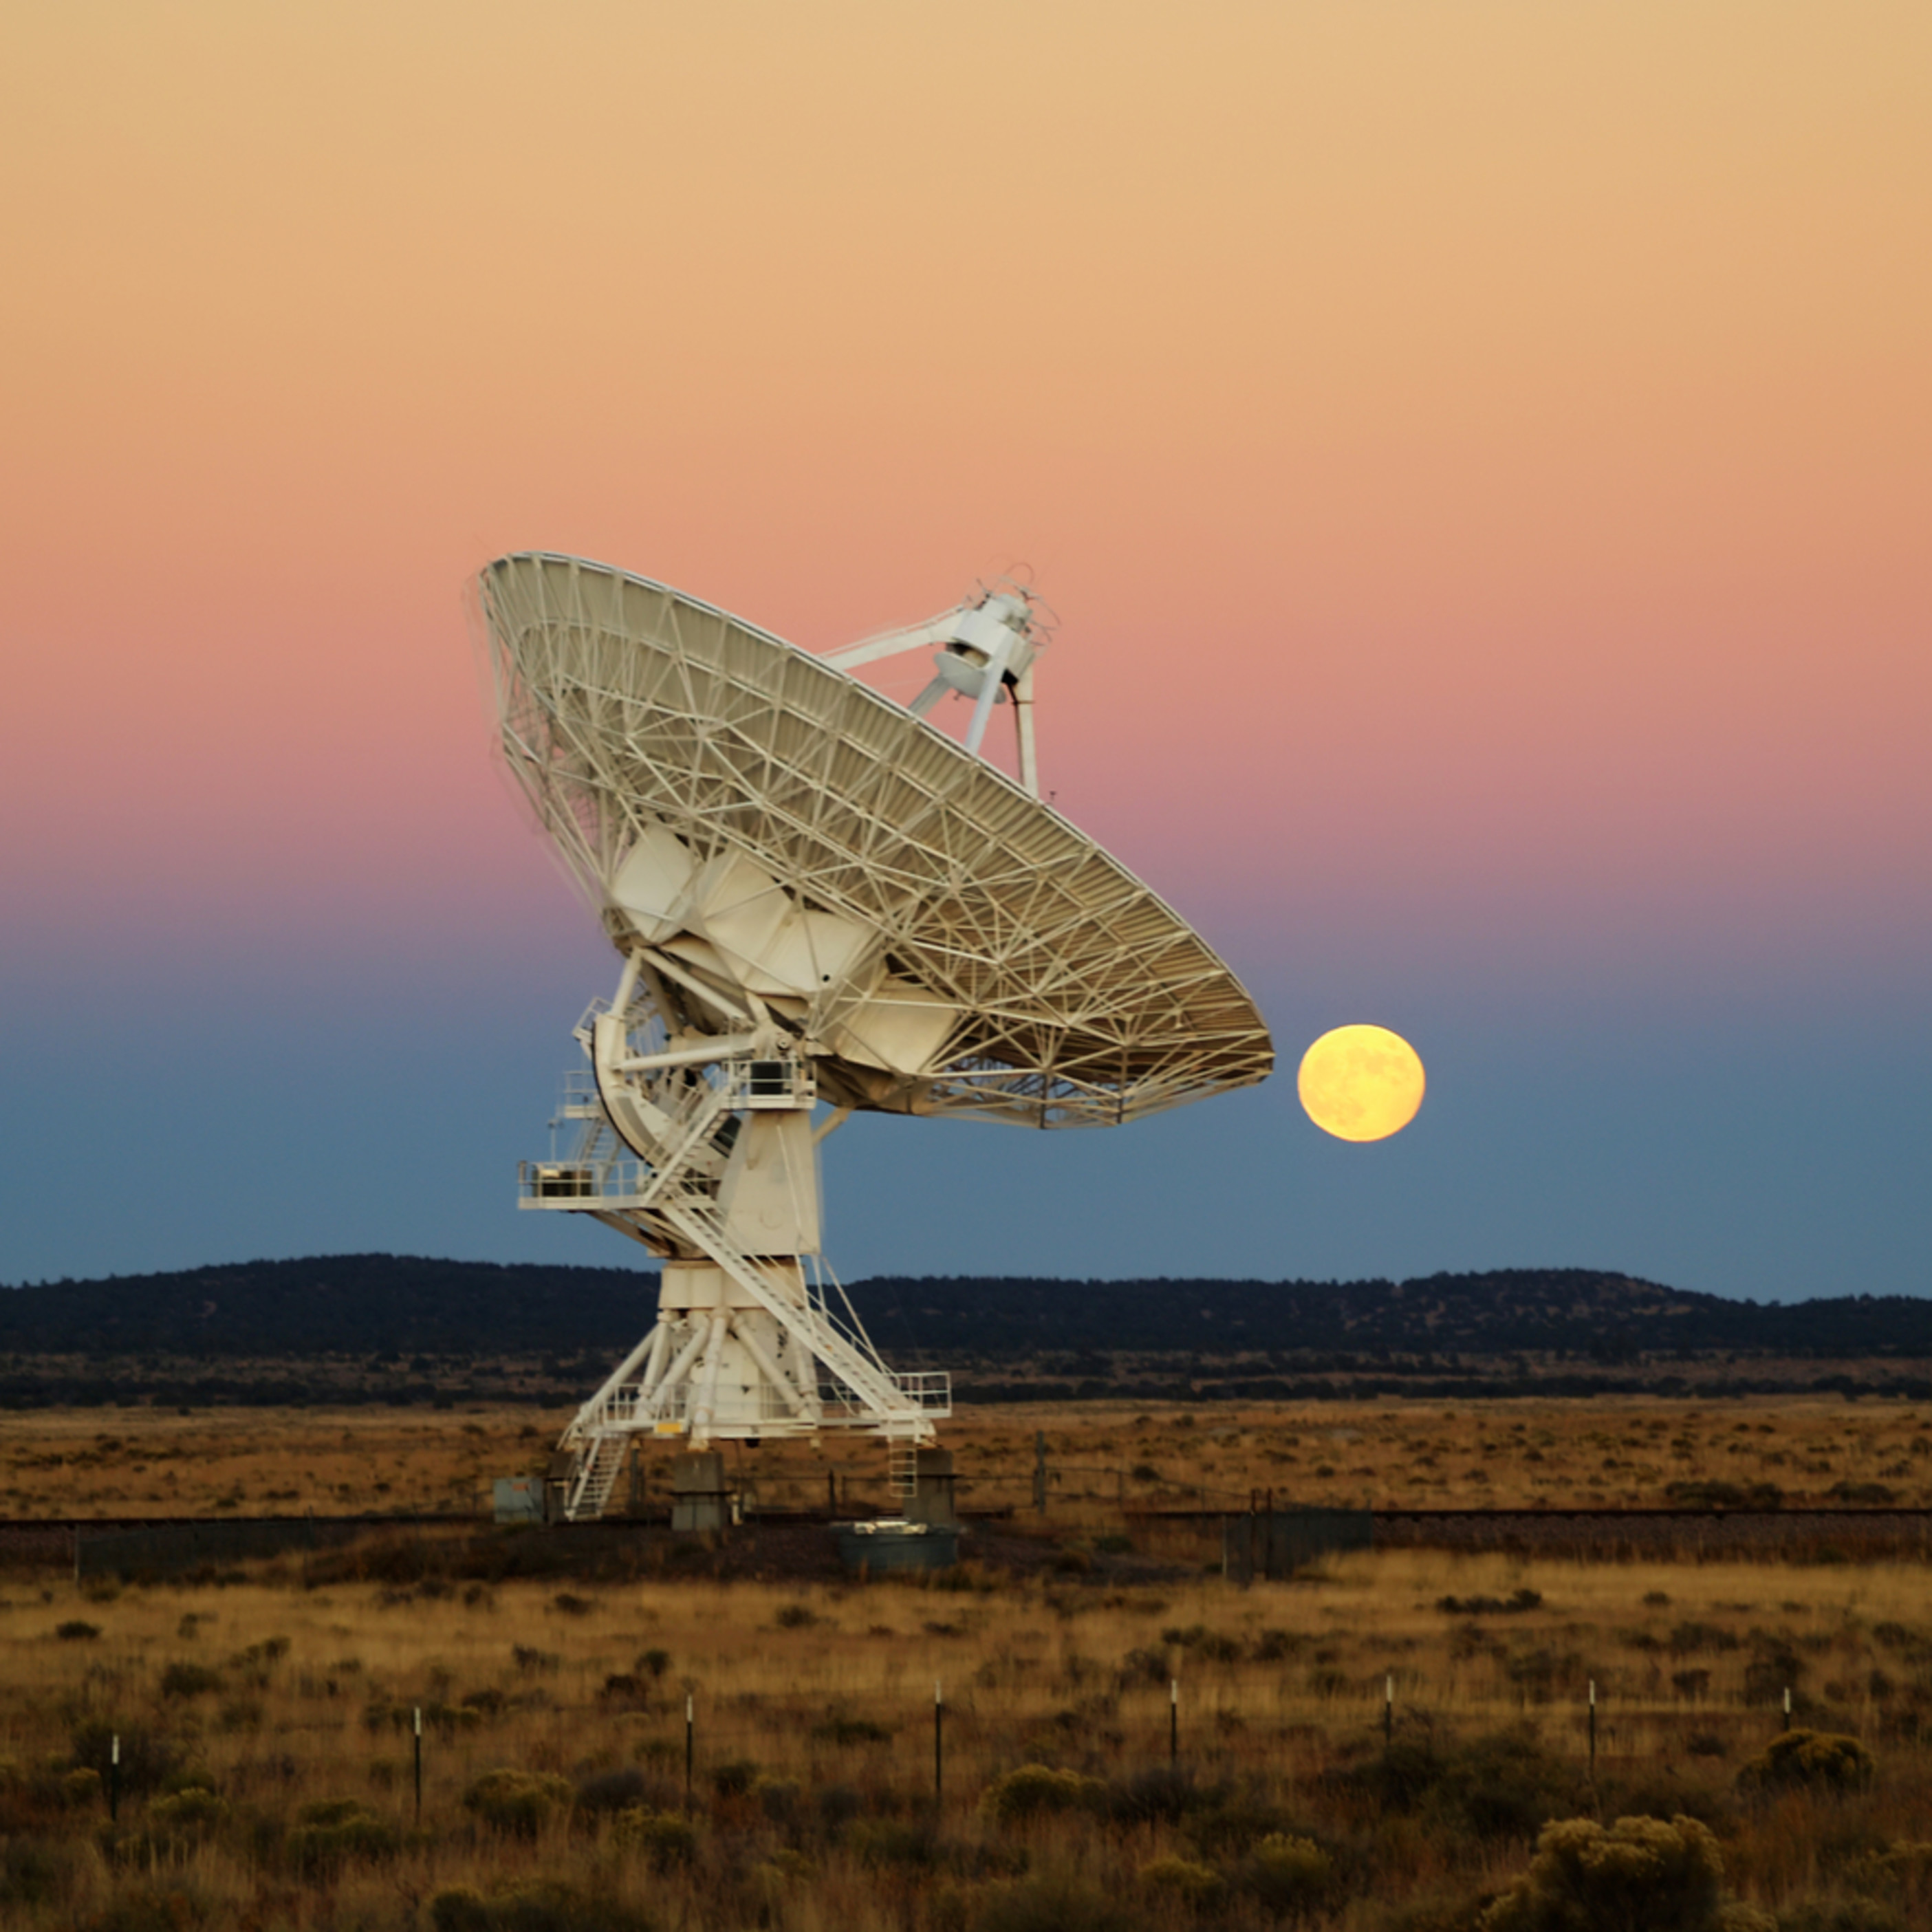 Moonrise over the vla1 iidp76